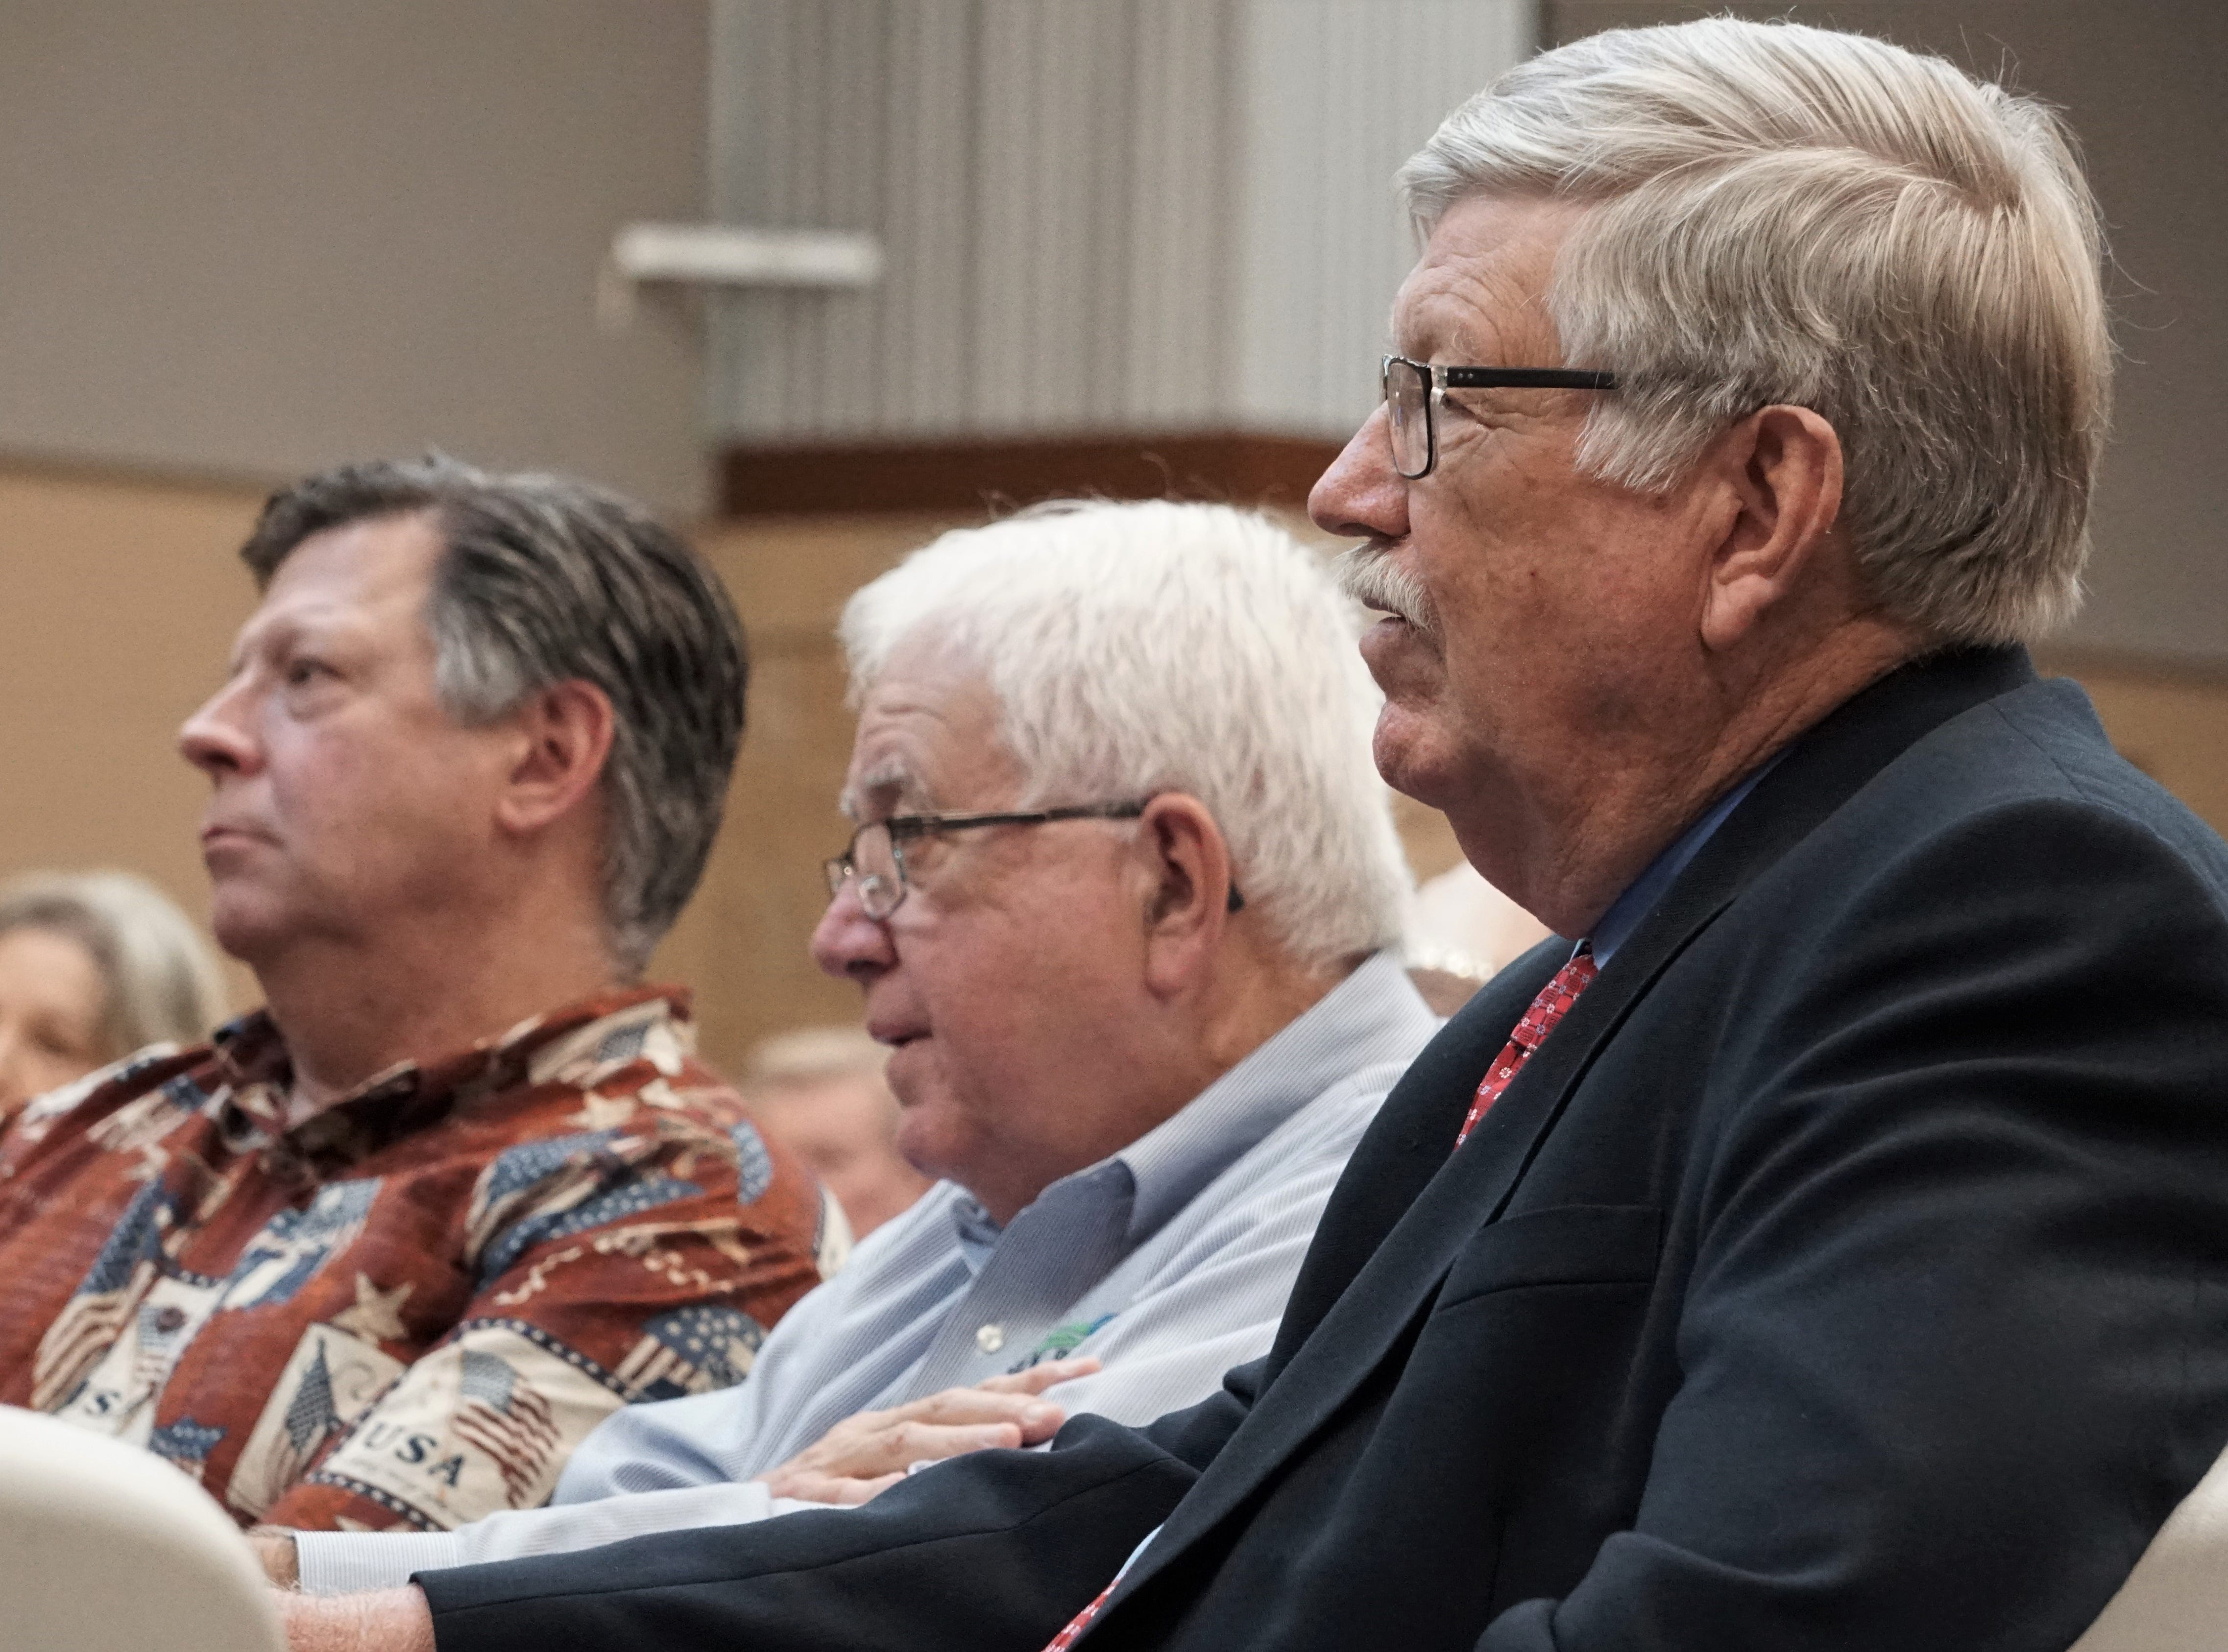 San Patricio County Judge David Krebs, right, listens to representatives with Steel Dynamics address the audience during a meet and greet at the San Patricio County Civic Center in Sinton on March 13, 2019.